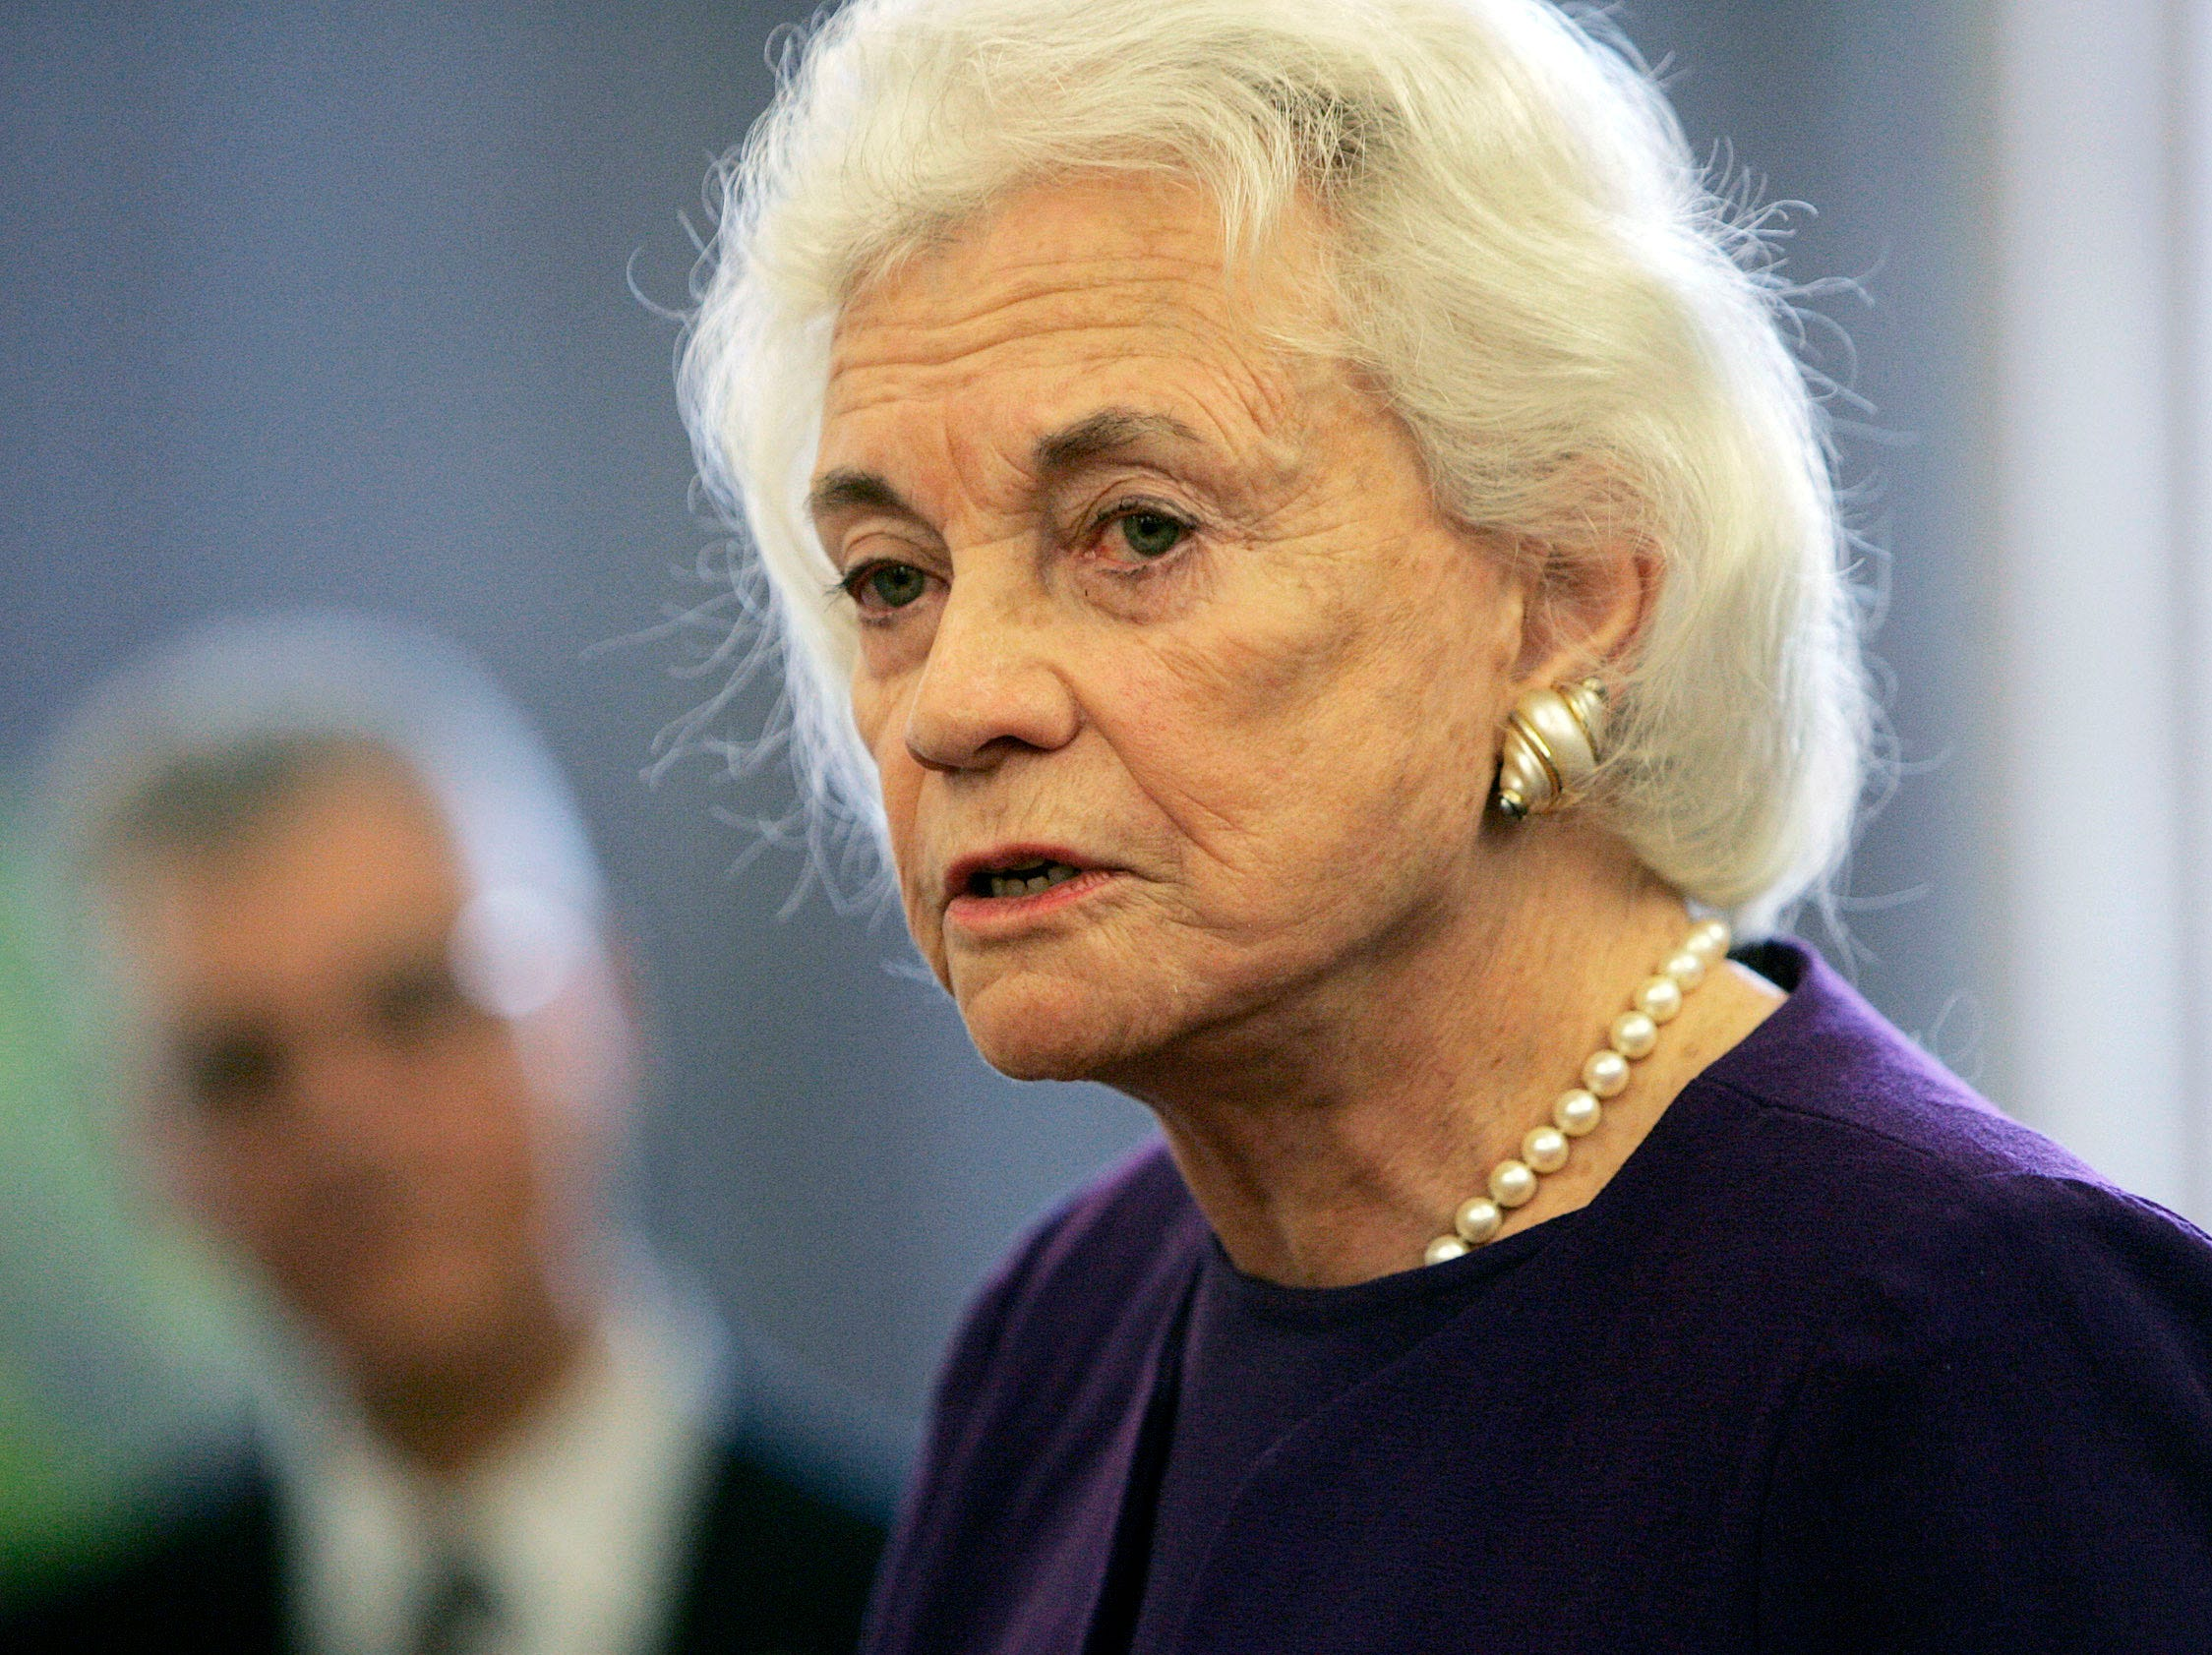 Former U.S. Supreme Court Justice Sandra Day O'Connor addresses students and faculty at the University of Denver school of law  in Denver on Wednesday, Oct. 10, 2007.  She was honored by the Institute for the Advancement of the American Legal System with the inaugural Transparent Courthouse Award.